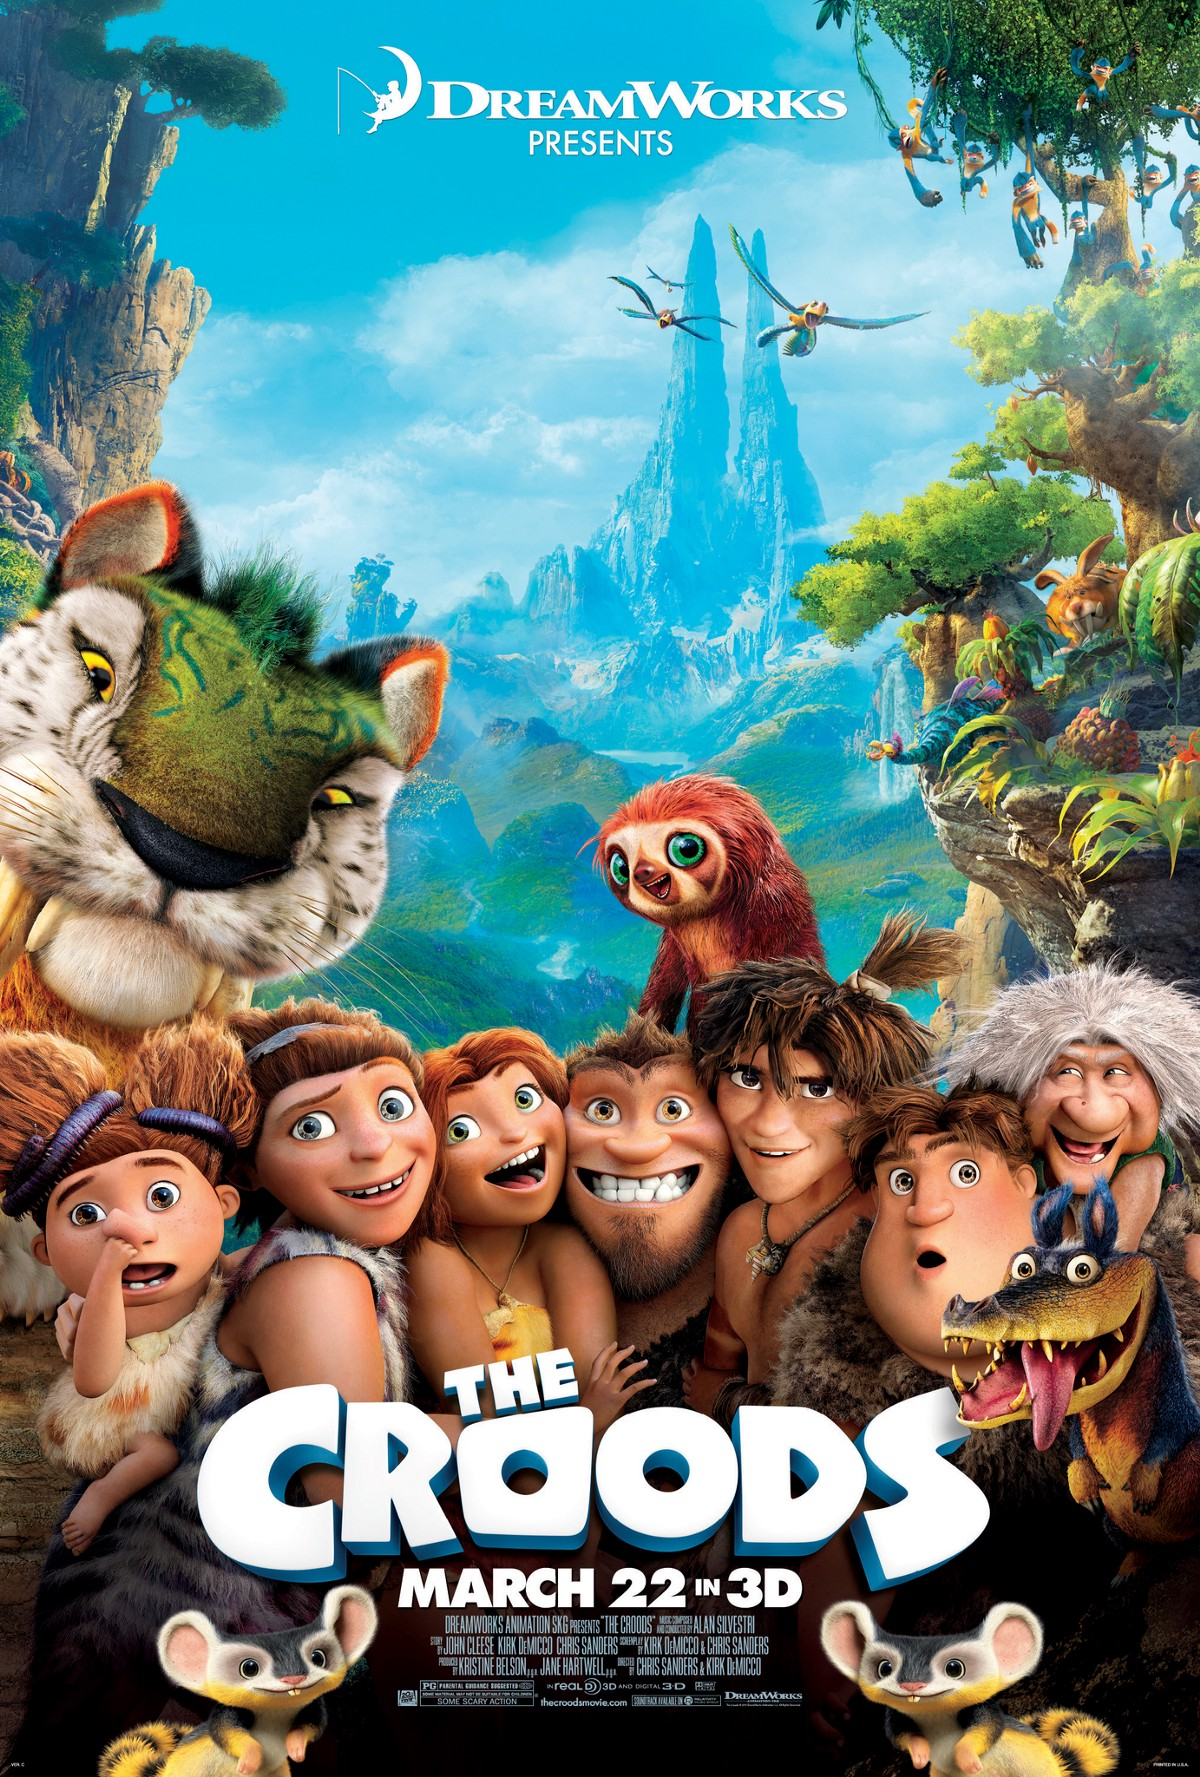 The Croods: A New Age [2020] | FULL MOVIE STREAMING | The Croods: A New Age ((2020)) — Stream.Online